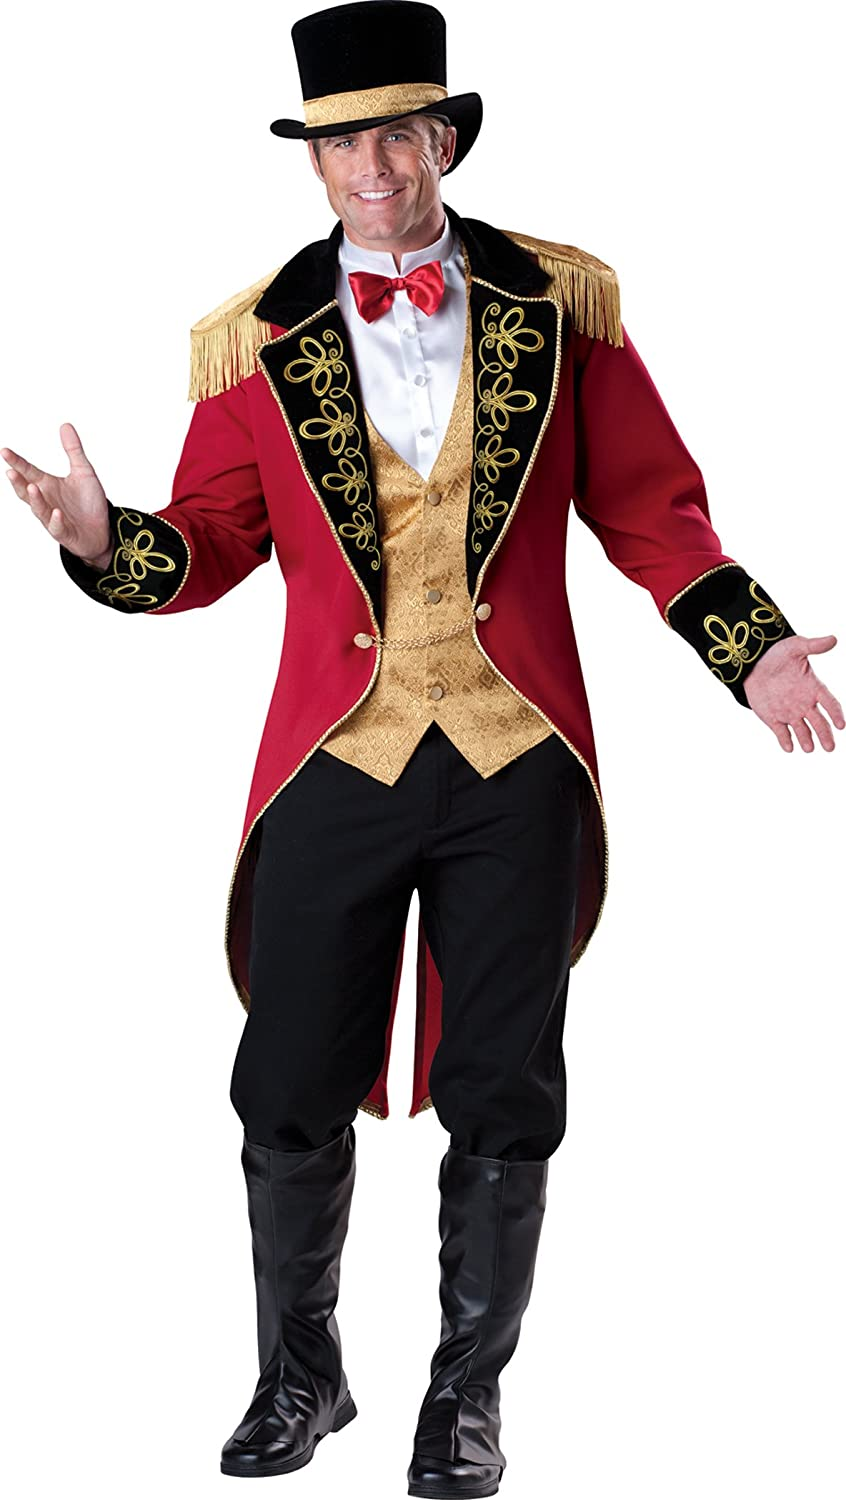 InCharacter Costumes Men's Ringmaster Circus Costume the greatest showman hugh jackman character